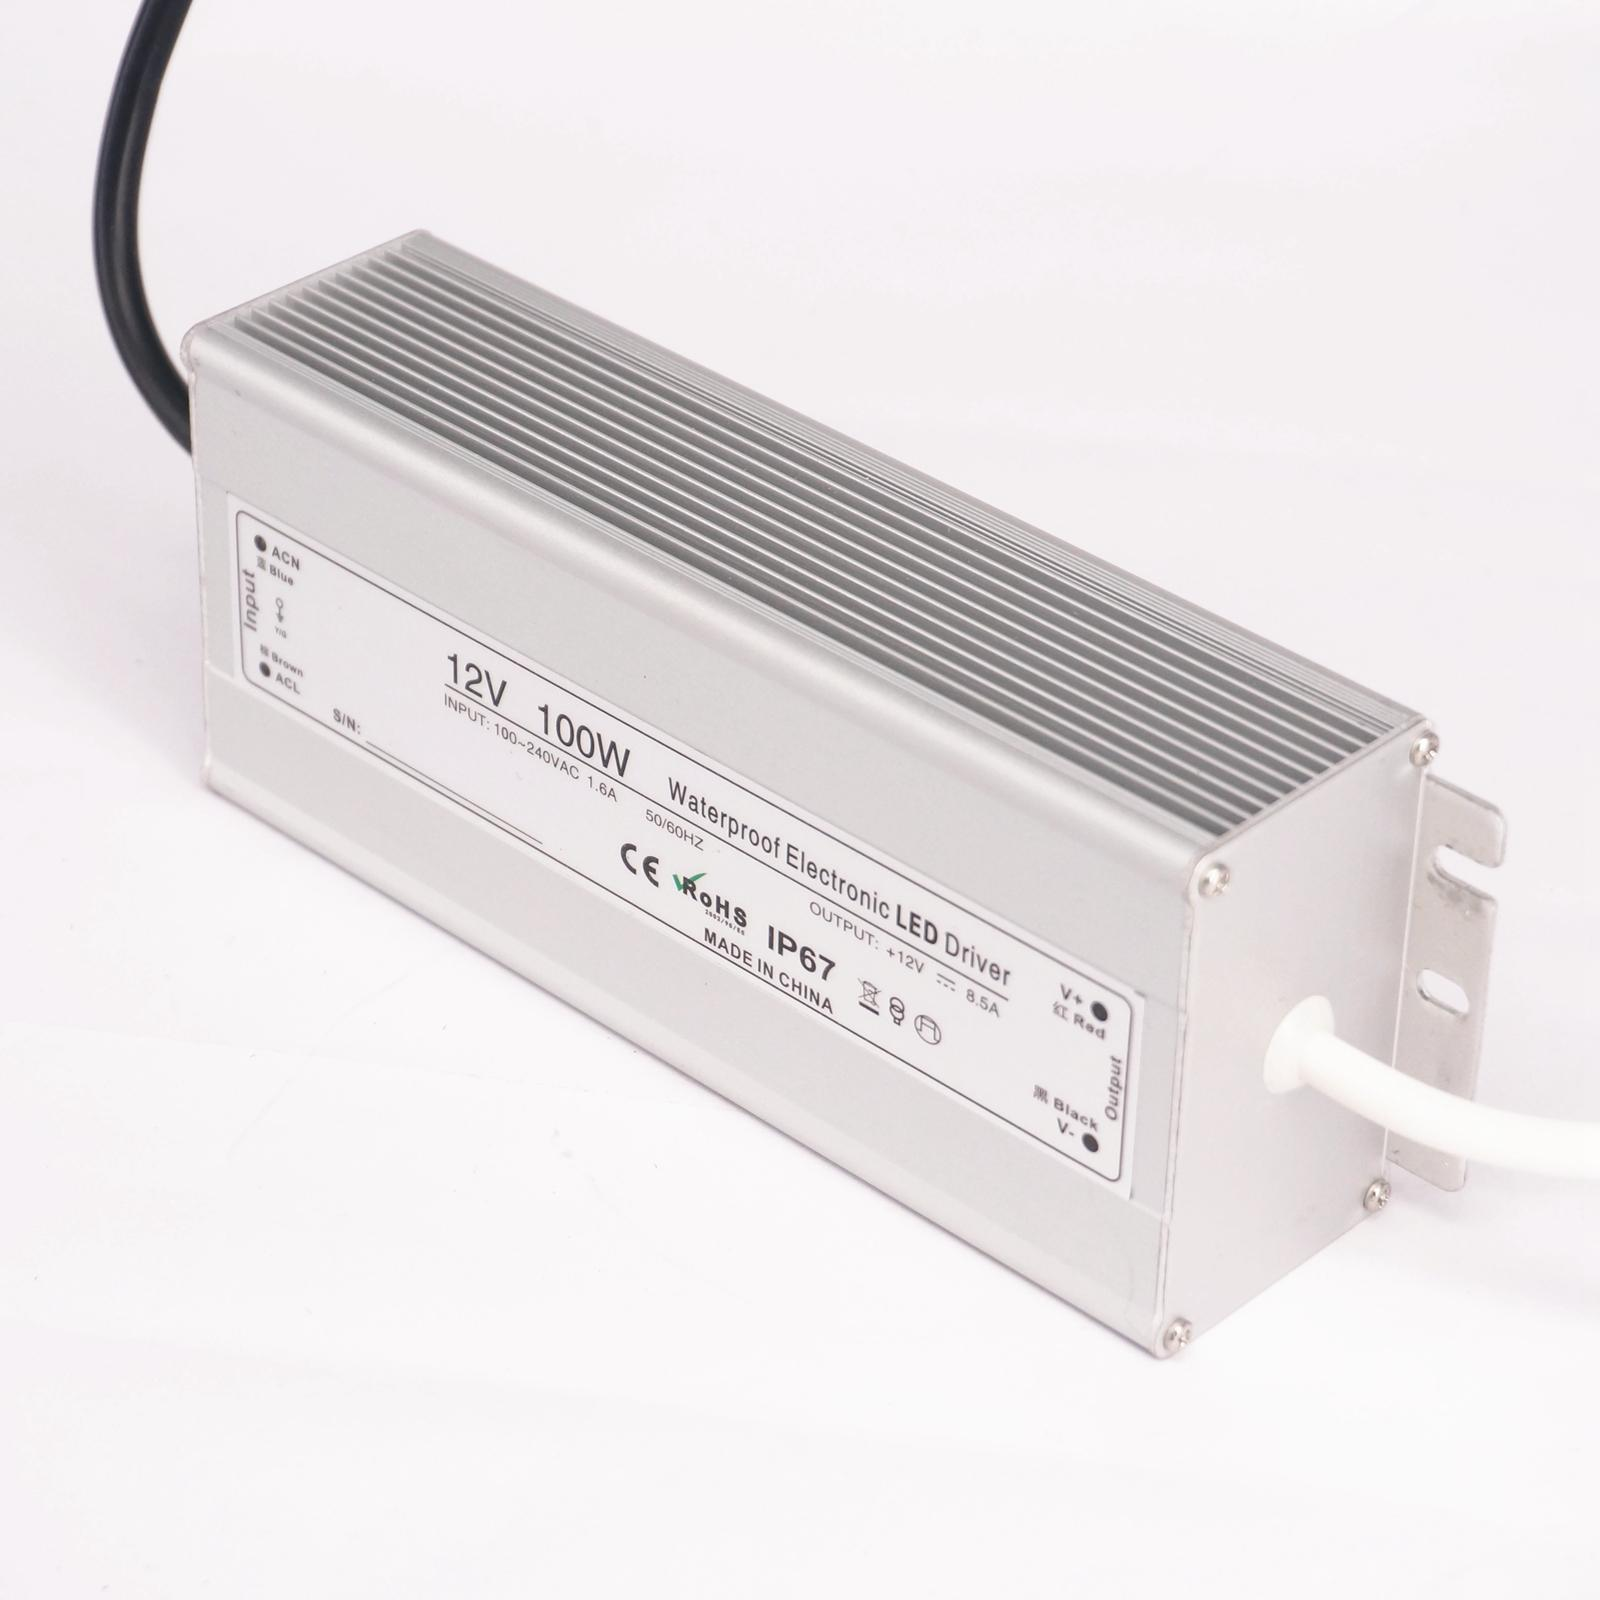 DC 12V 100W LED Driver IP67 Waterproof Transformer Outdoor